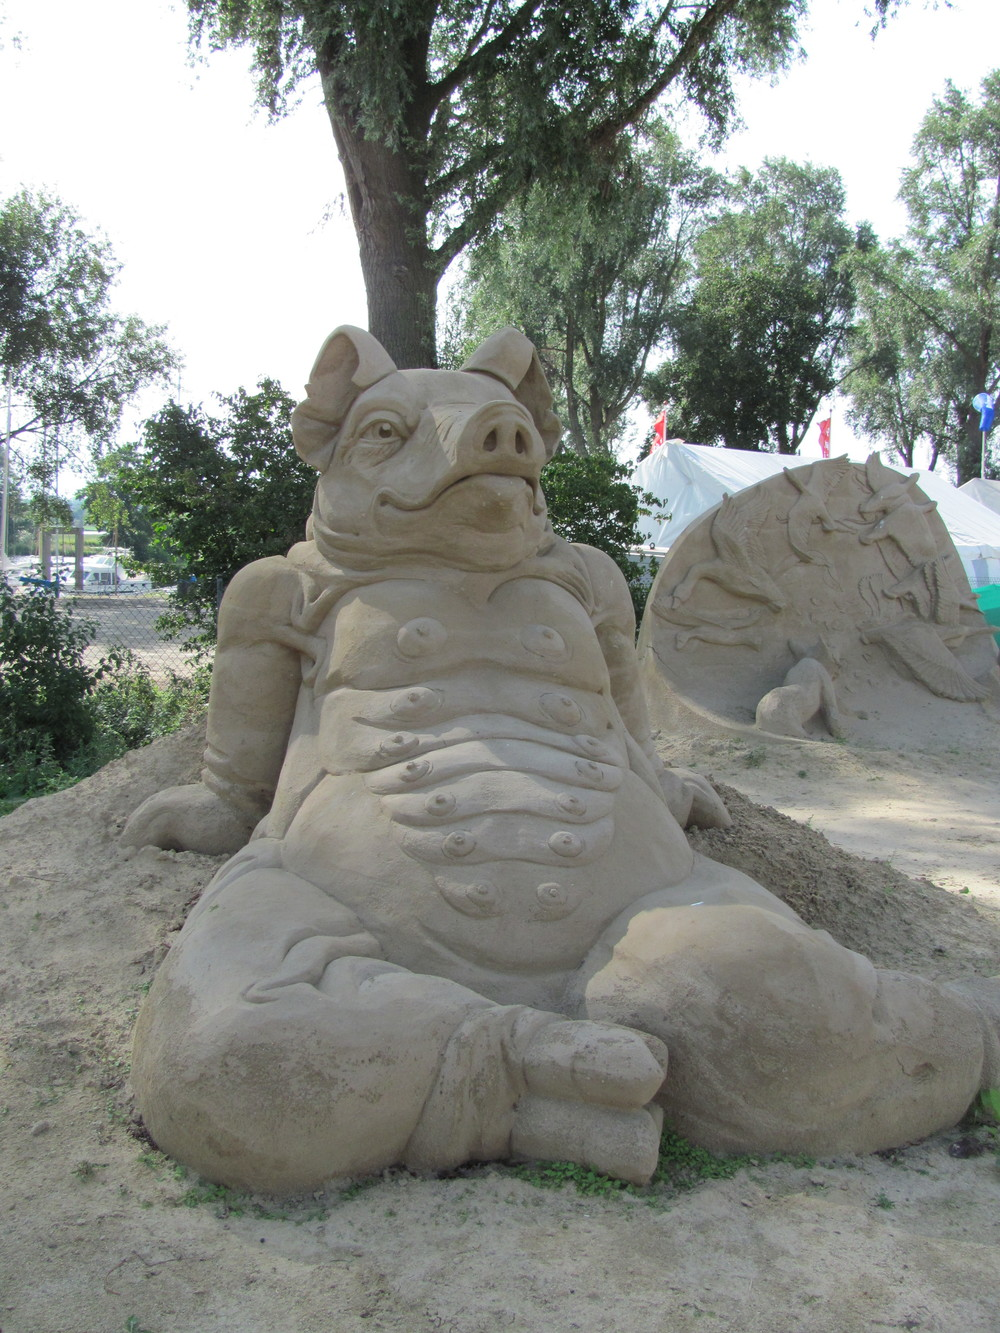 The Dutch Sand Sculpture Festival